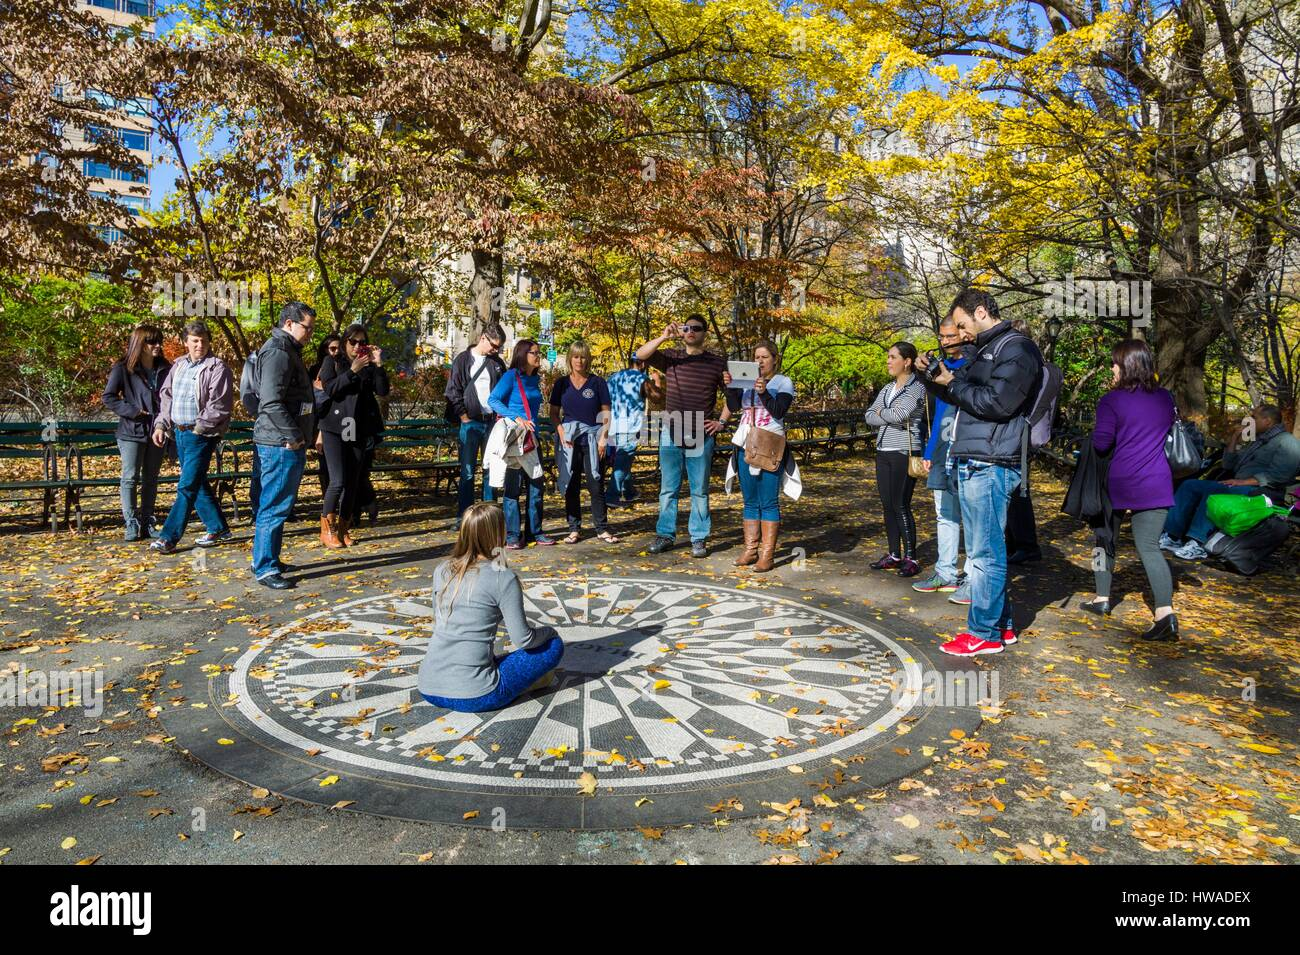 United States, New York, New York City, Central Park, John Lennon Memorial, Imagine, Strawberry Fields, with tourists - Stock Image